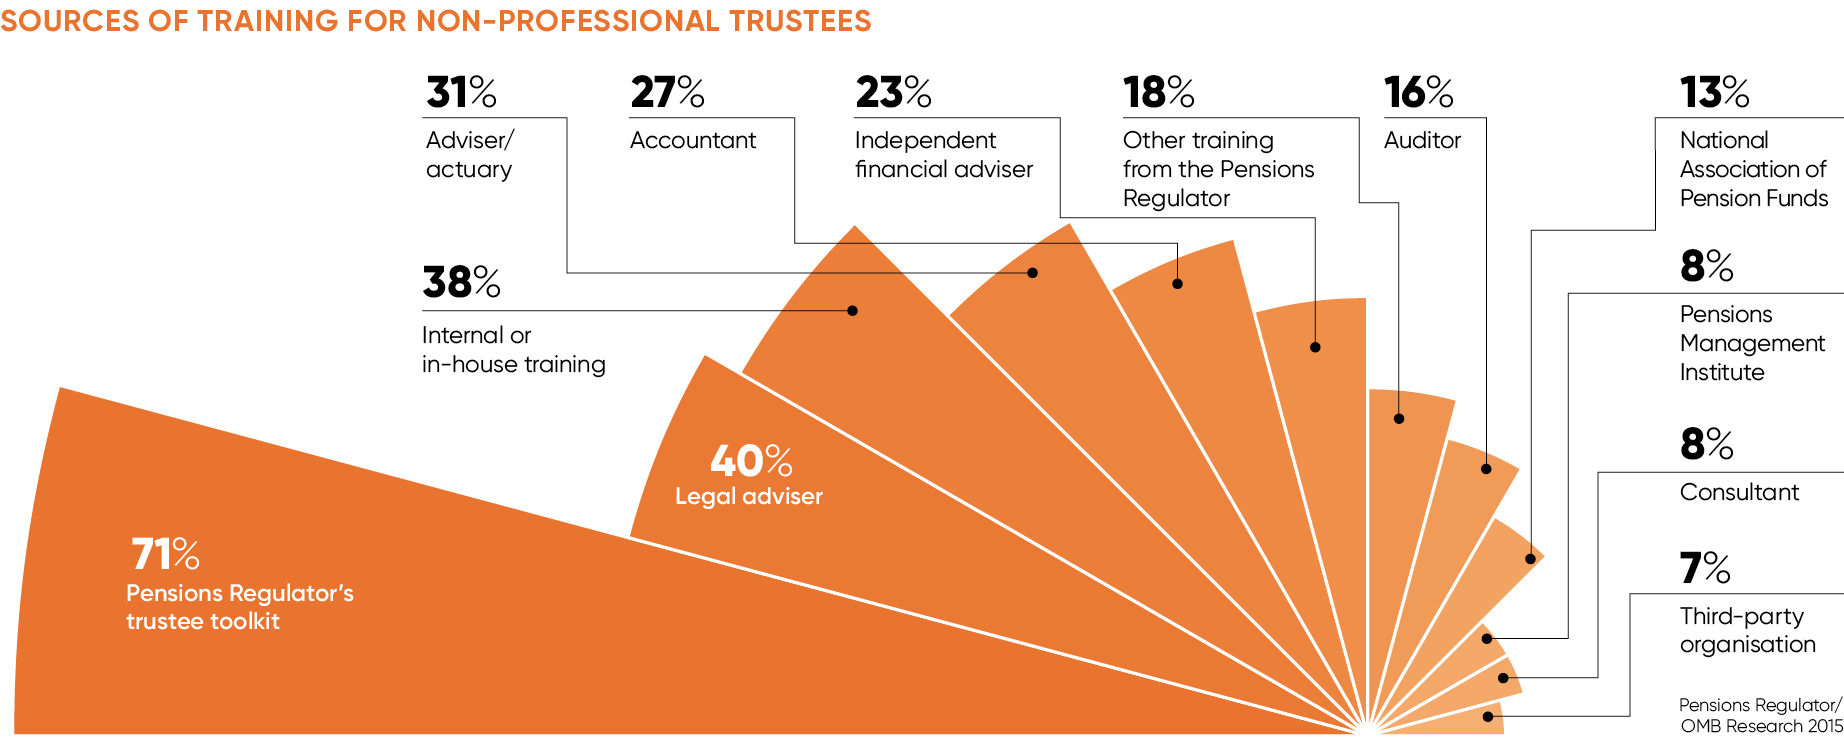 SOURCES OF TRAINING FOR NON-PROFESSIONAL TRUSTEE